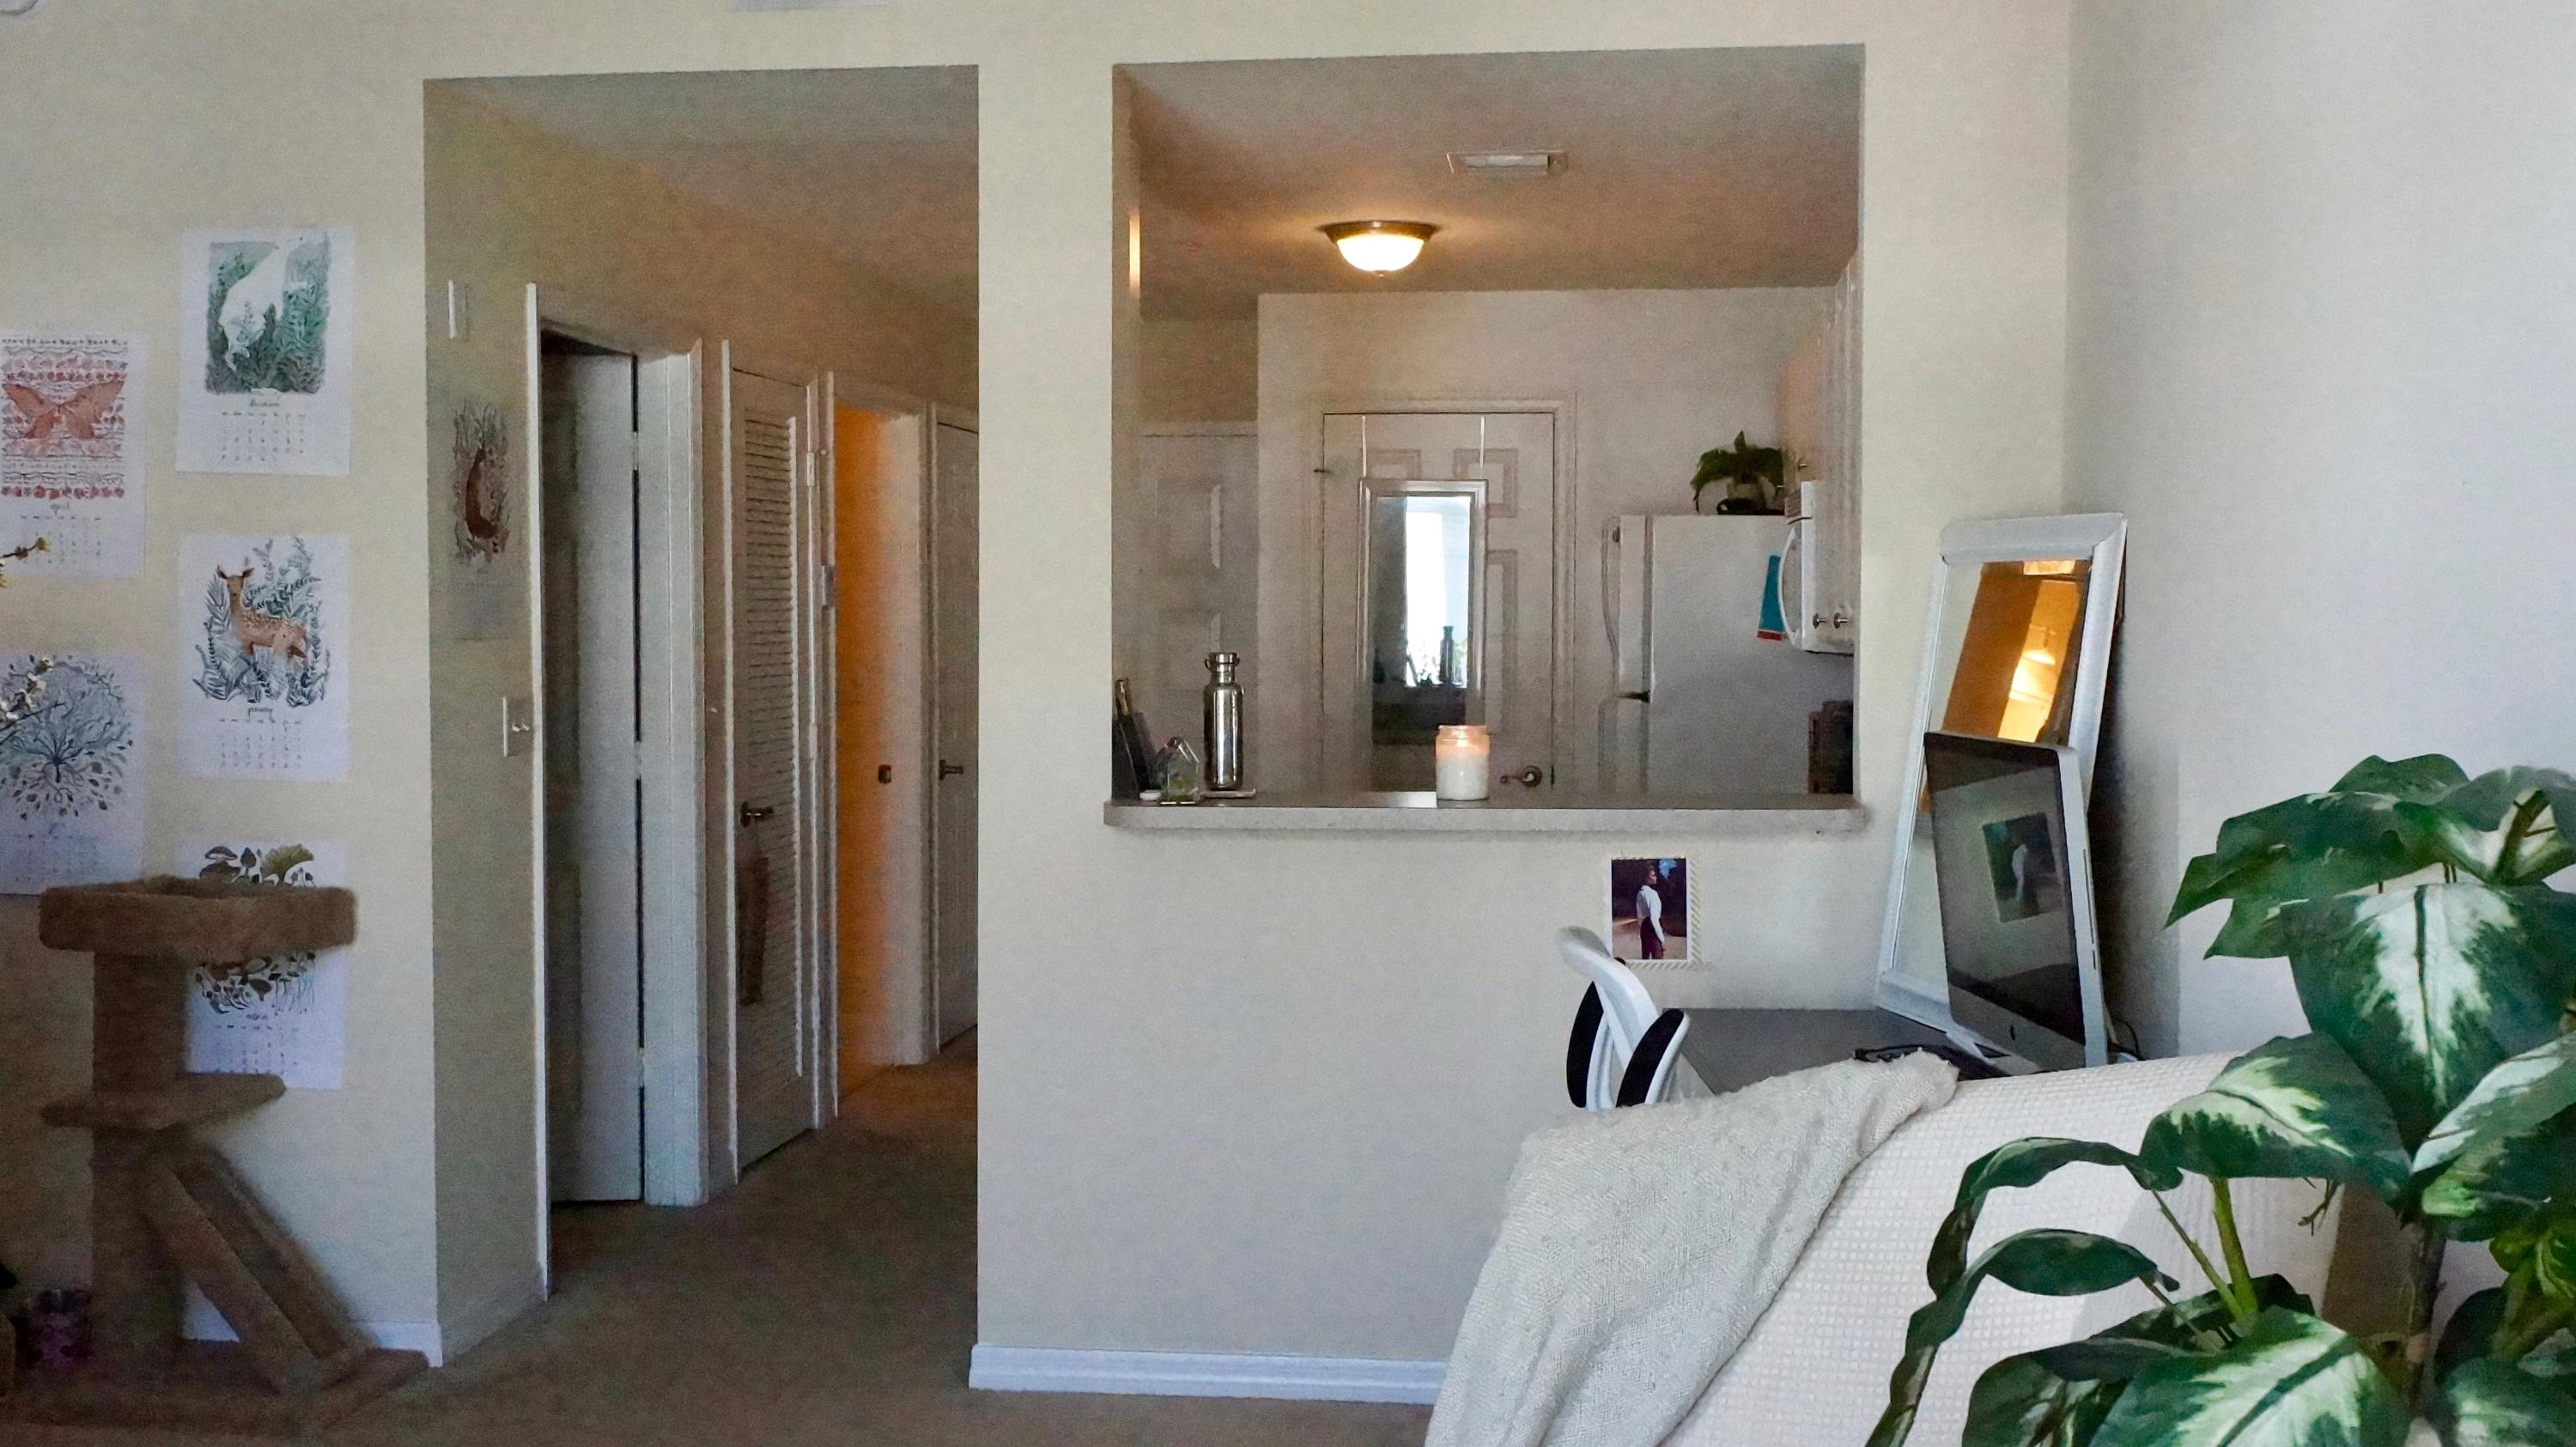 1200 Town Center Drive 420  - Abacoa Homes - photo 6